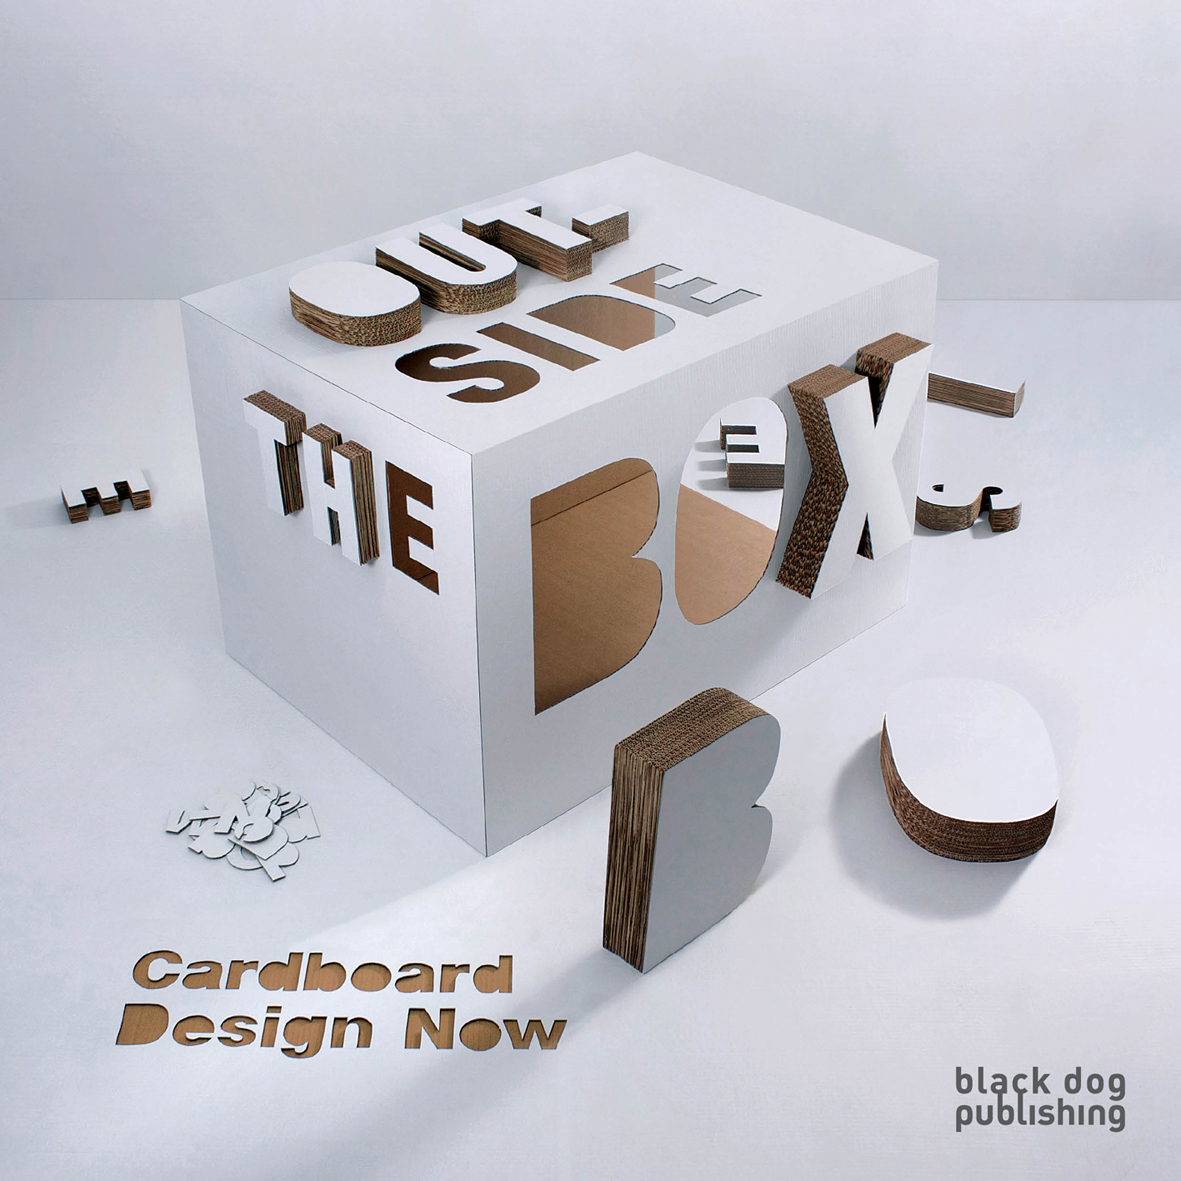 Outside the Box Cardboard Design Now by Black Dog Publishing